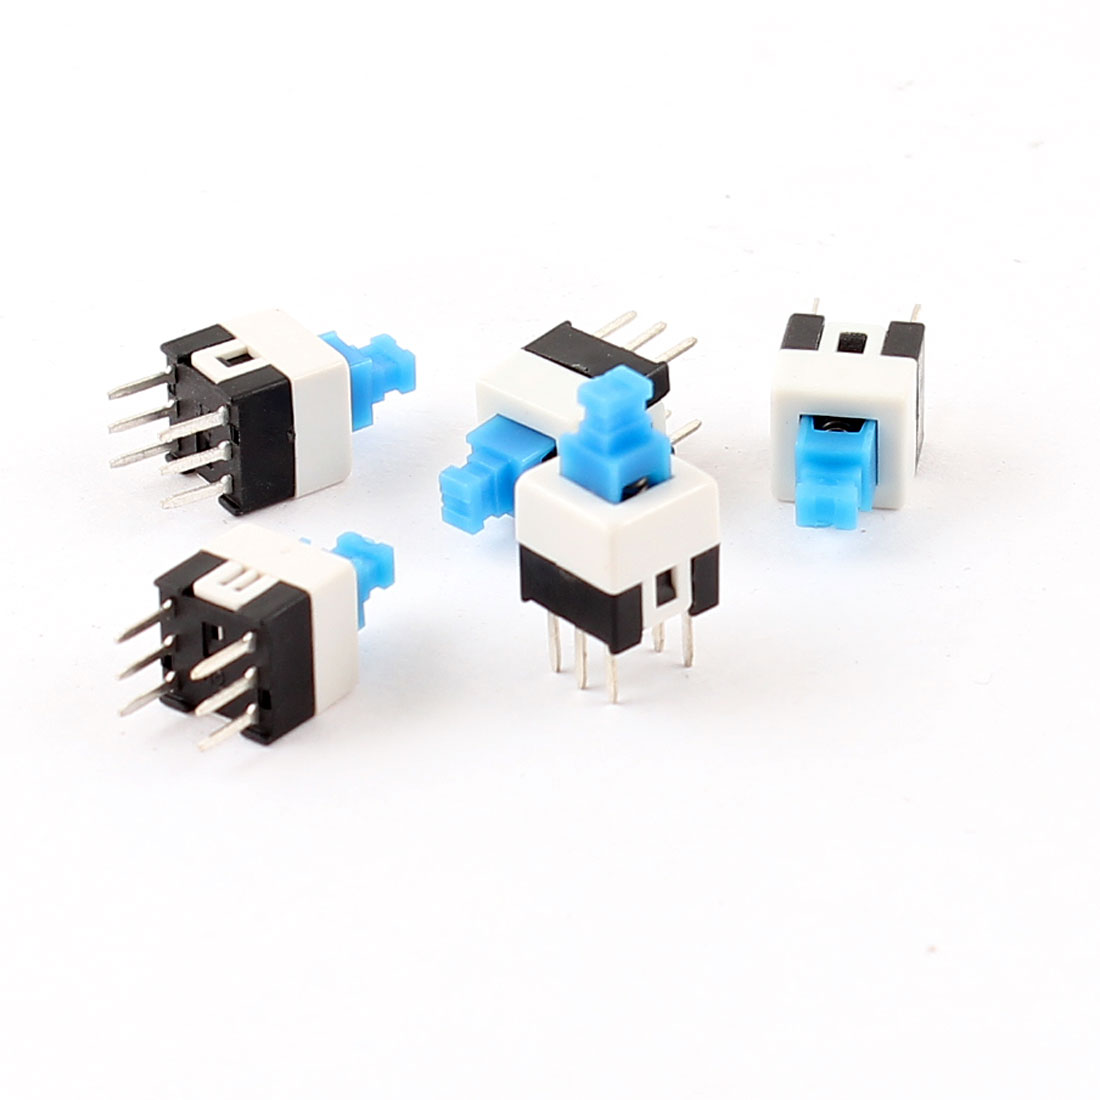 5 Pcs 6 Pin PCB Light Touch Locking Push Button Tact Tactile Switch 7mm x 7mm